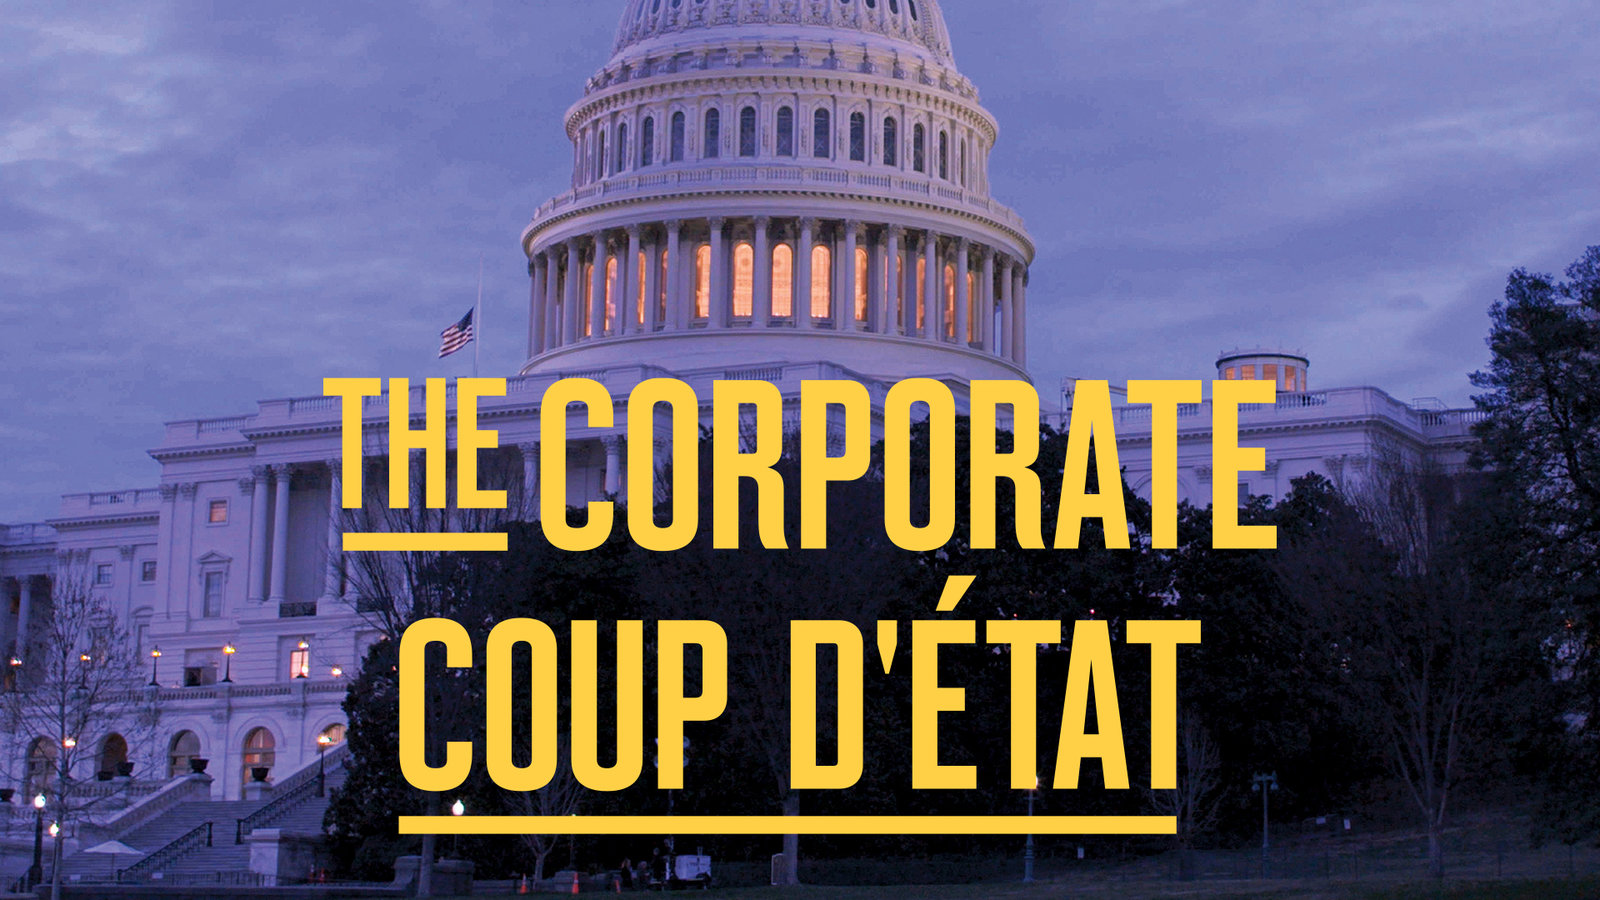 The Corporate Coup D'etat - How Capitalist Interests Subvert American Democracy